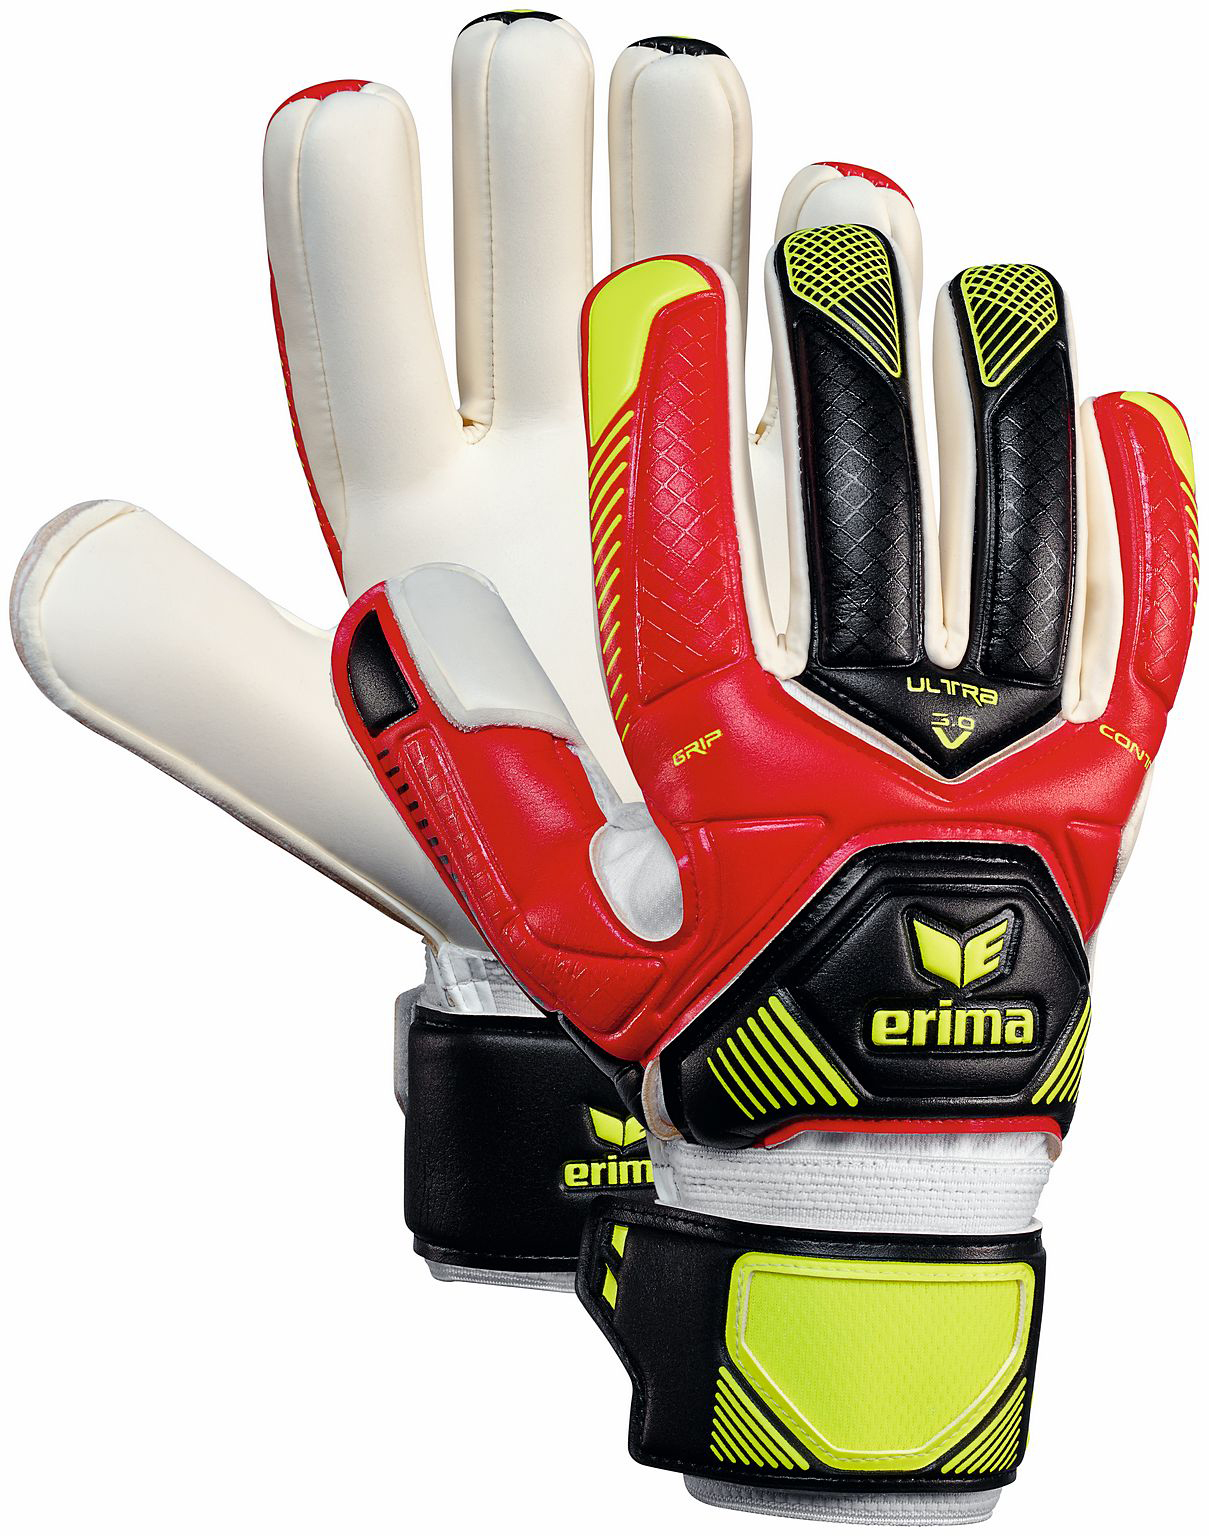 Erima Contact Ultra Grip 3.0 Torwarthandschuhe